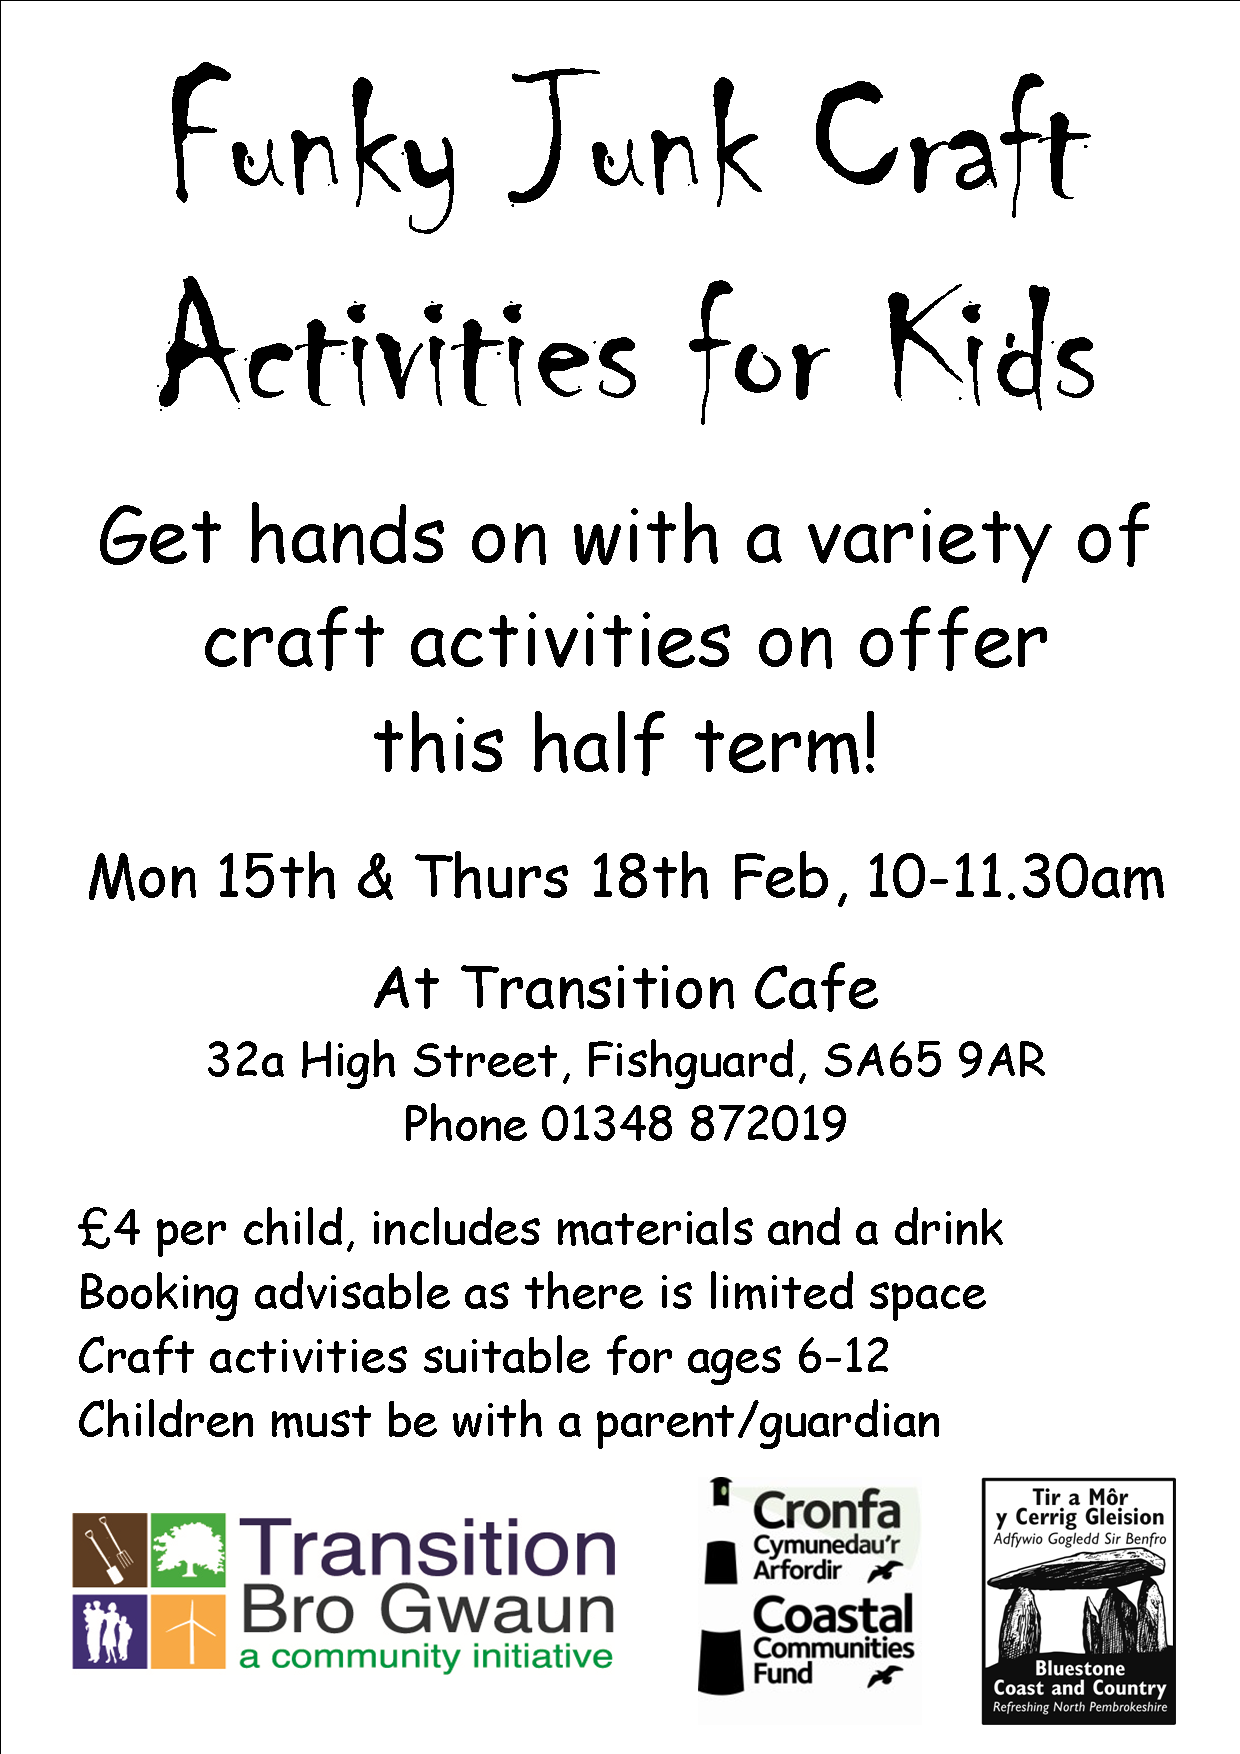 Funky Craft Holiday Activities Poster A4 Feb 16